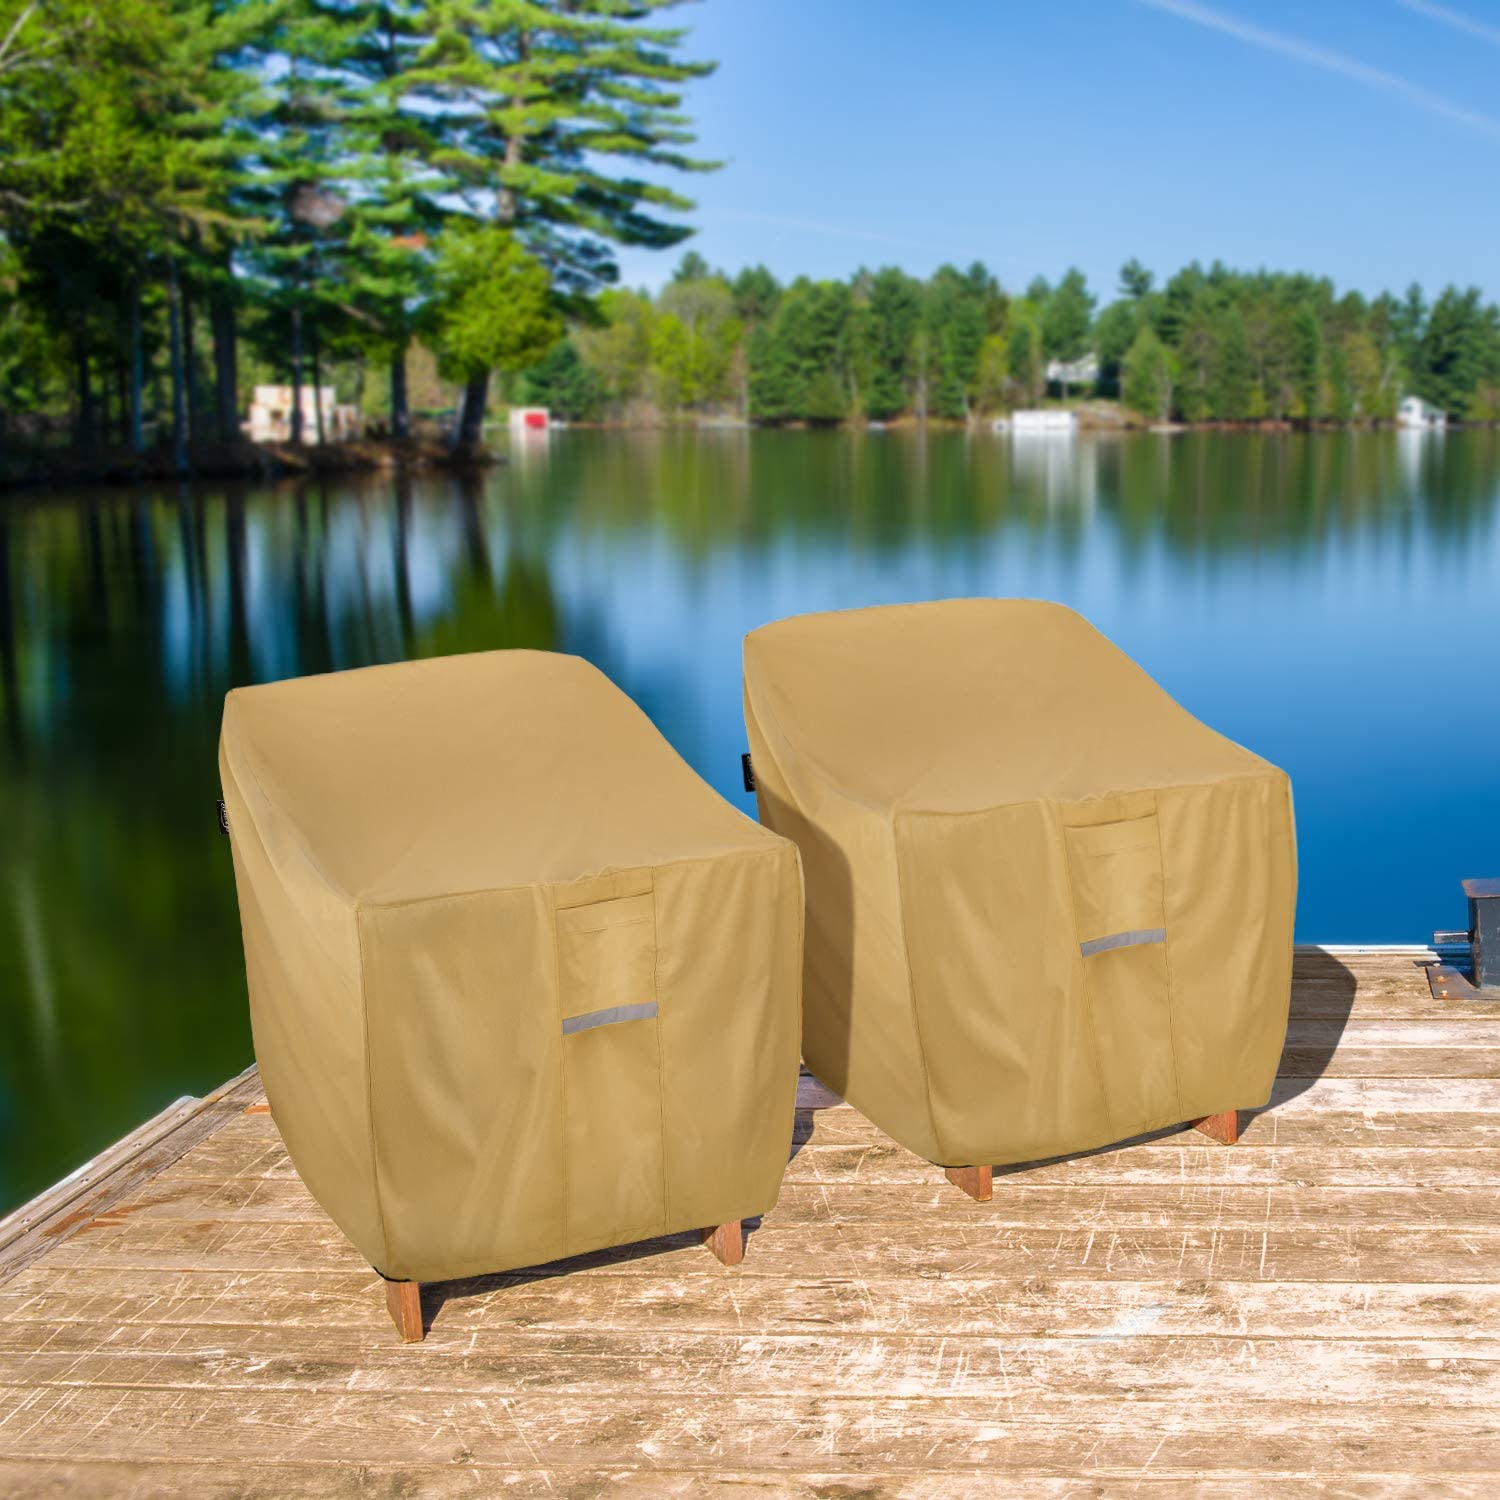 Waterproof Heavy Duty Outdoor Lawn Patio Furniture Cover Light Brown Pack of 1 30 W x 37 D x 31 H Seat Cover Sunkorto Patio Chair Cover